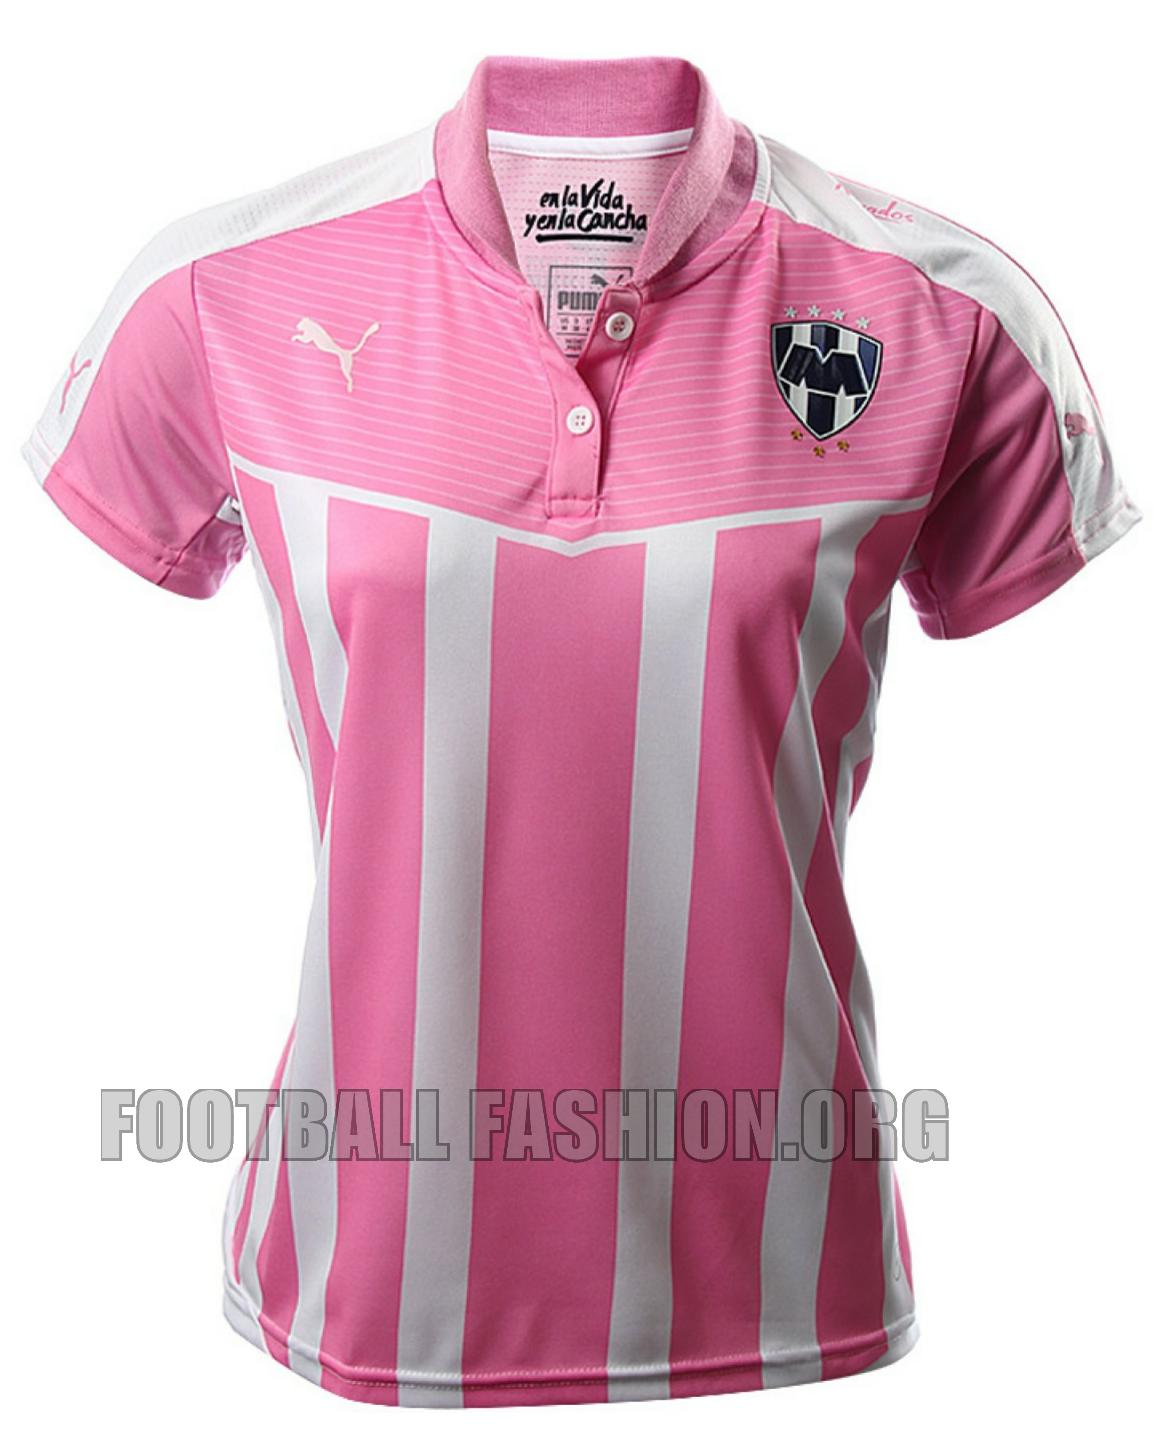 f48108891bf They use the same PUMA kit designs as the club's 2015/16 home jerseys but  have their sponsor logos removed. The PUMA Project Pink logo is embroidered  on the ...